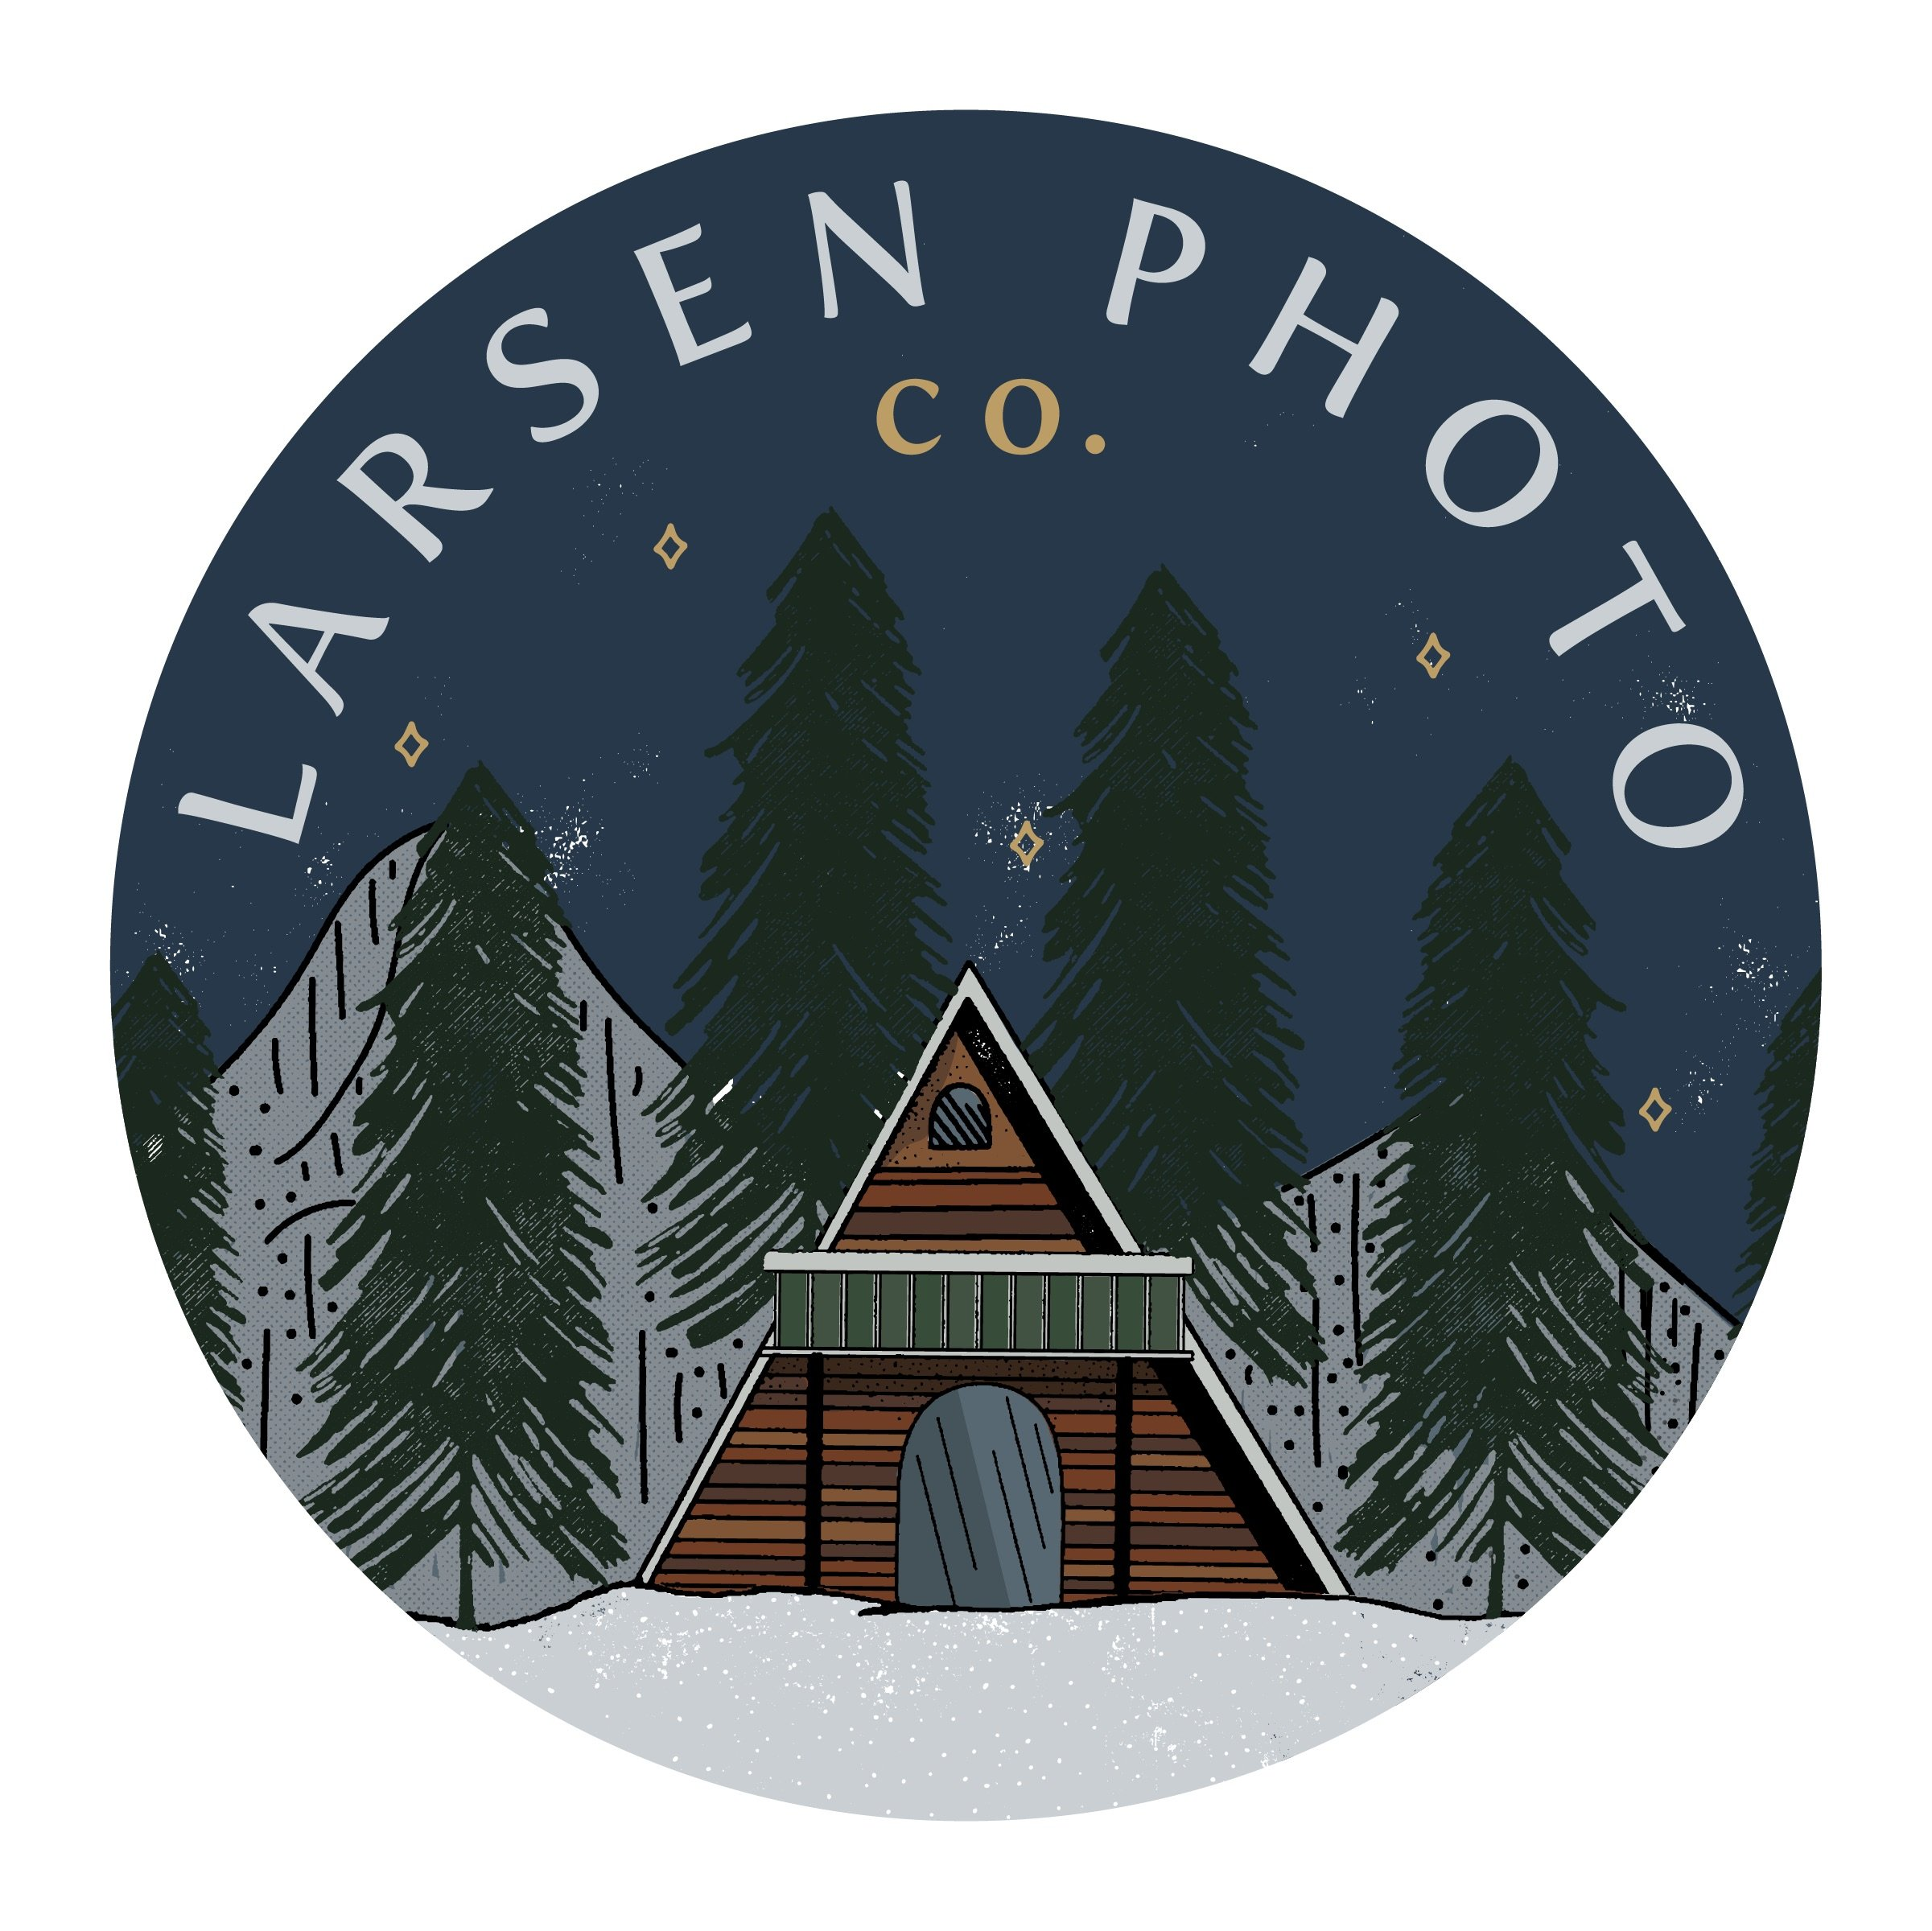 Larsen Photo Co.